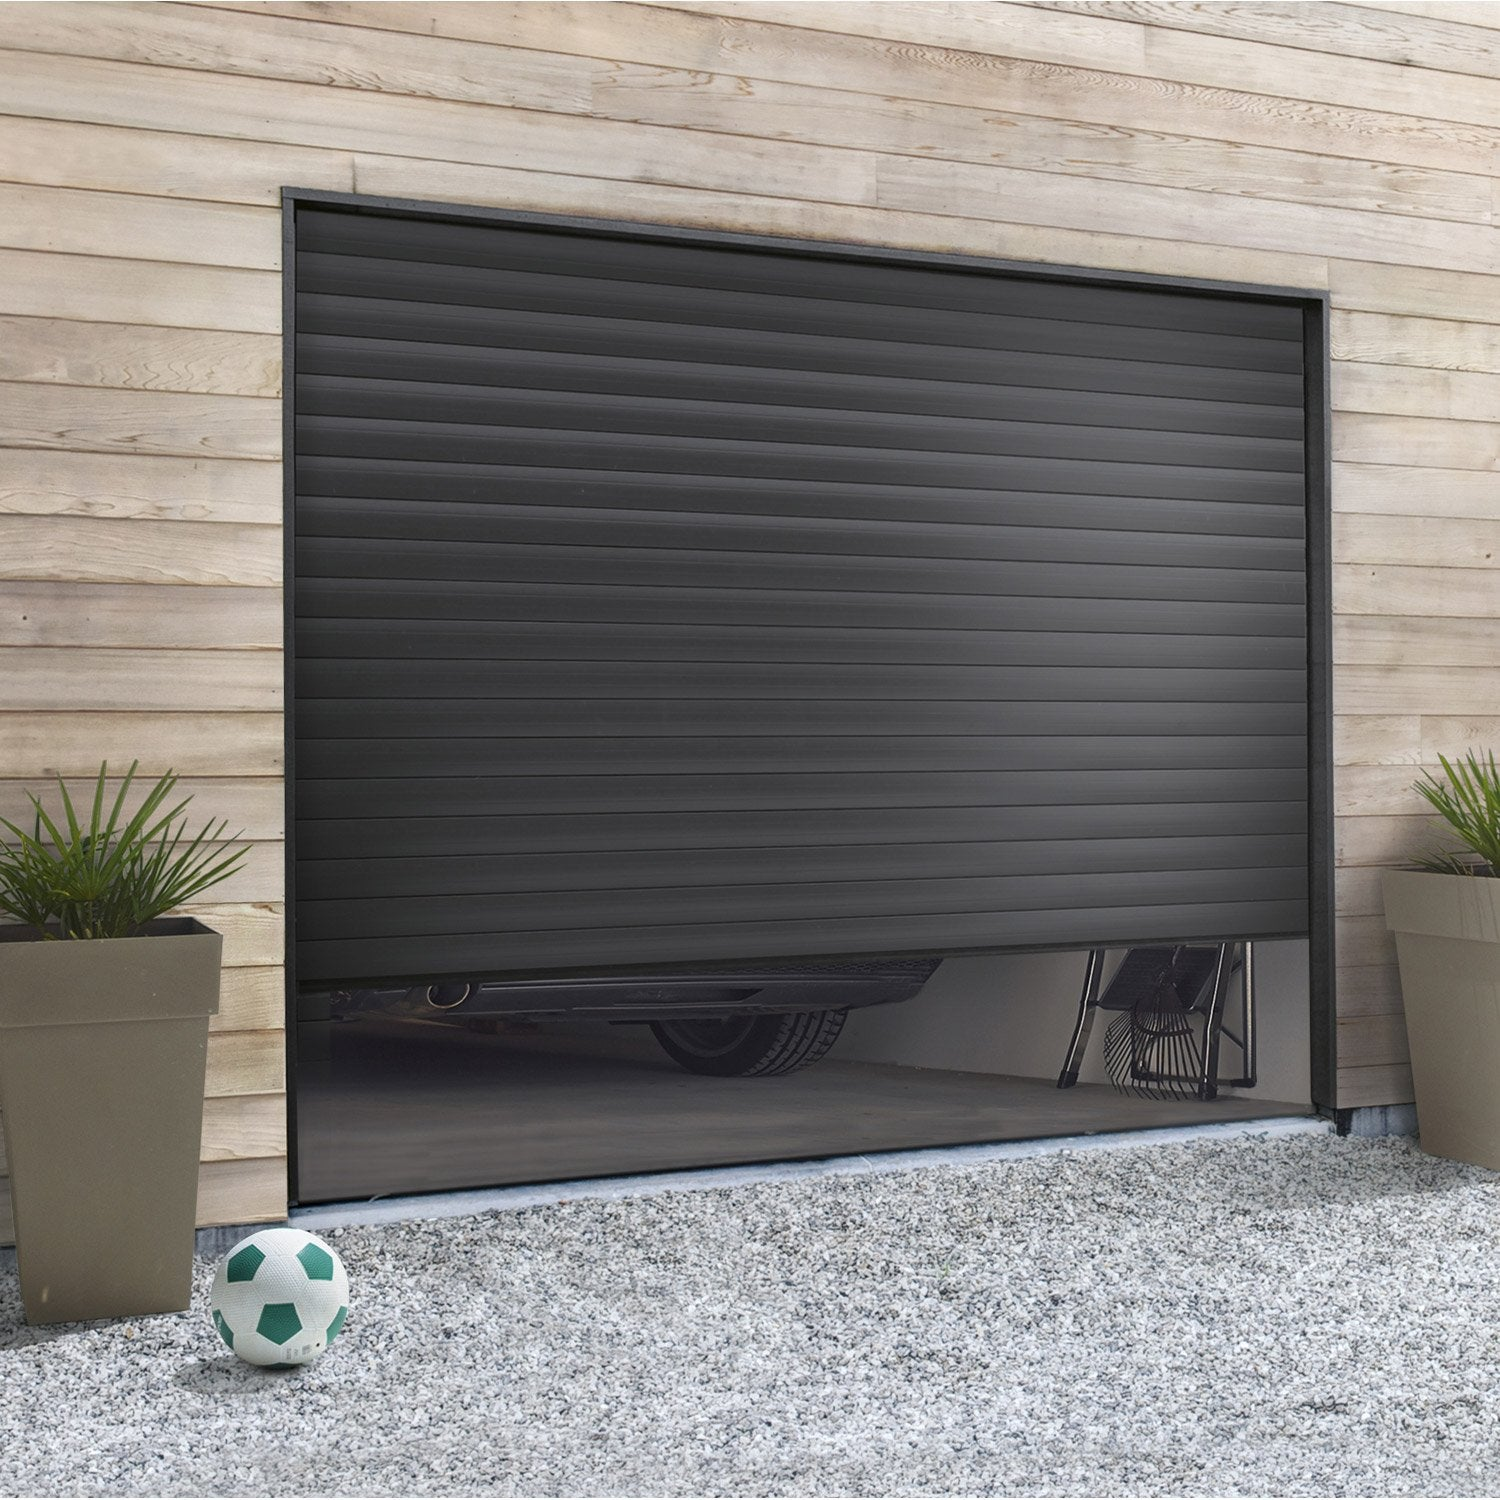 Pose d 39 une porte de garage enroulable leroy merlin - Porte de garage sectionnelle avec portillon leroy merlin ...